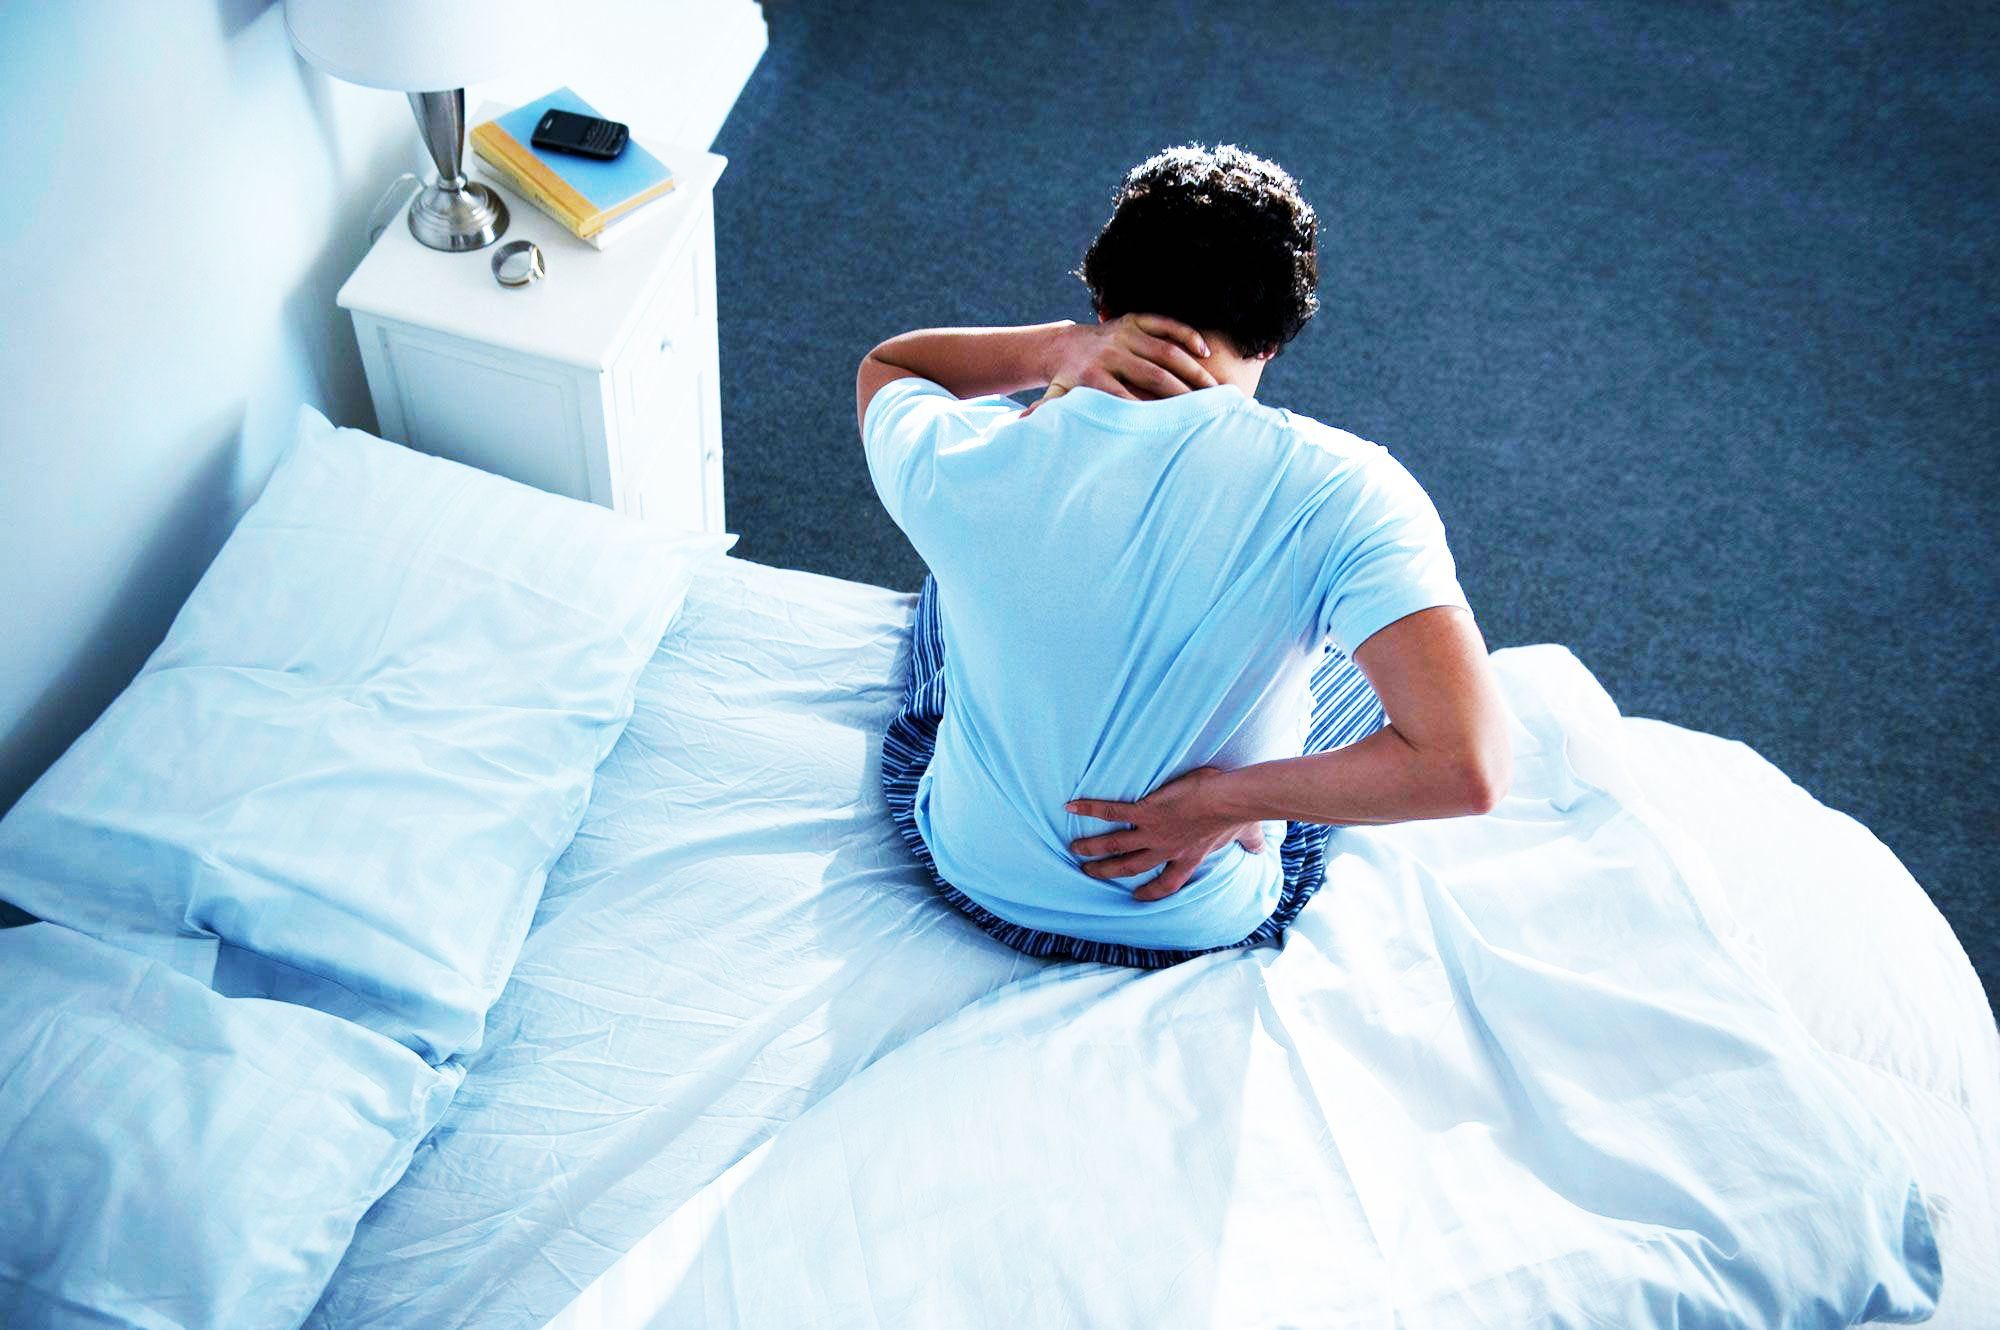 7 Mattresses to Help You Deal With Back Pain and Sleep Better